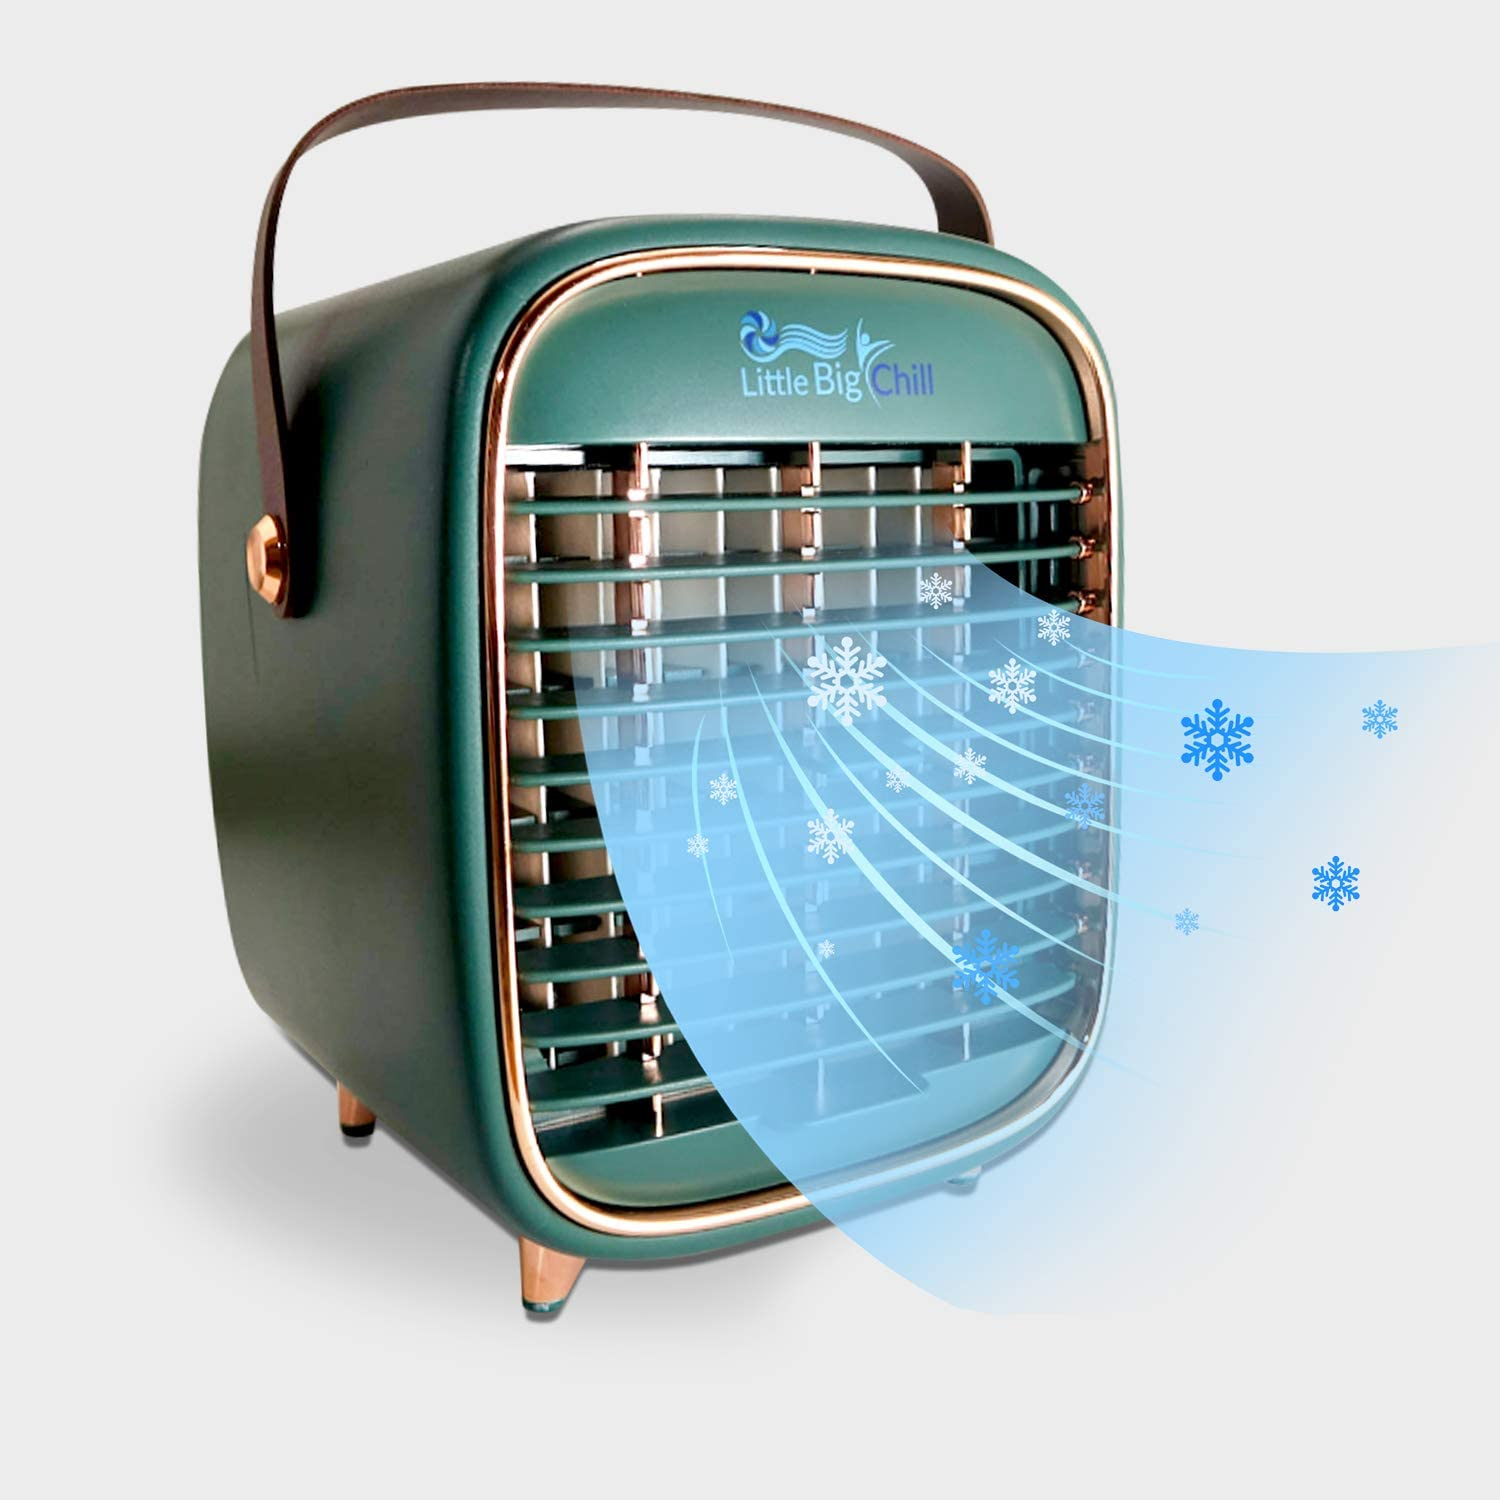 DT Digital Marketing Services LLC Little Big Chill Small Portable Air Conditioner